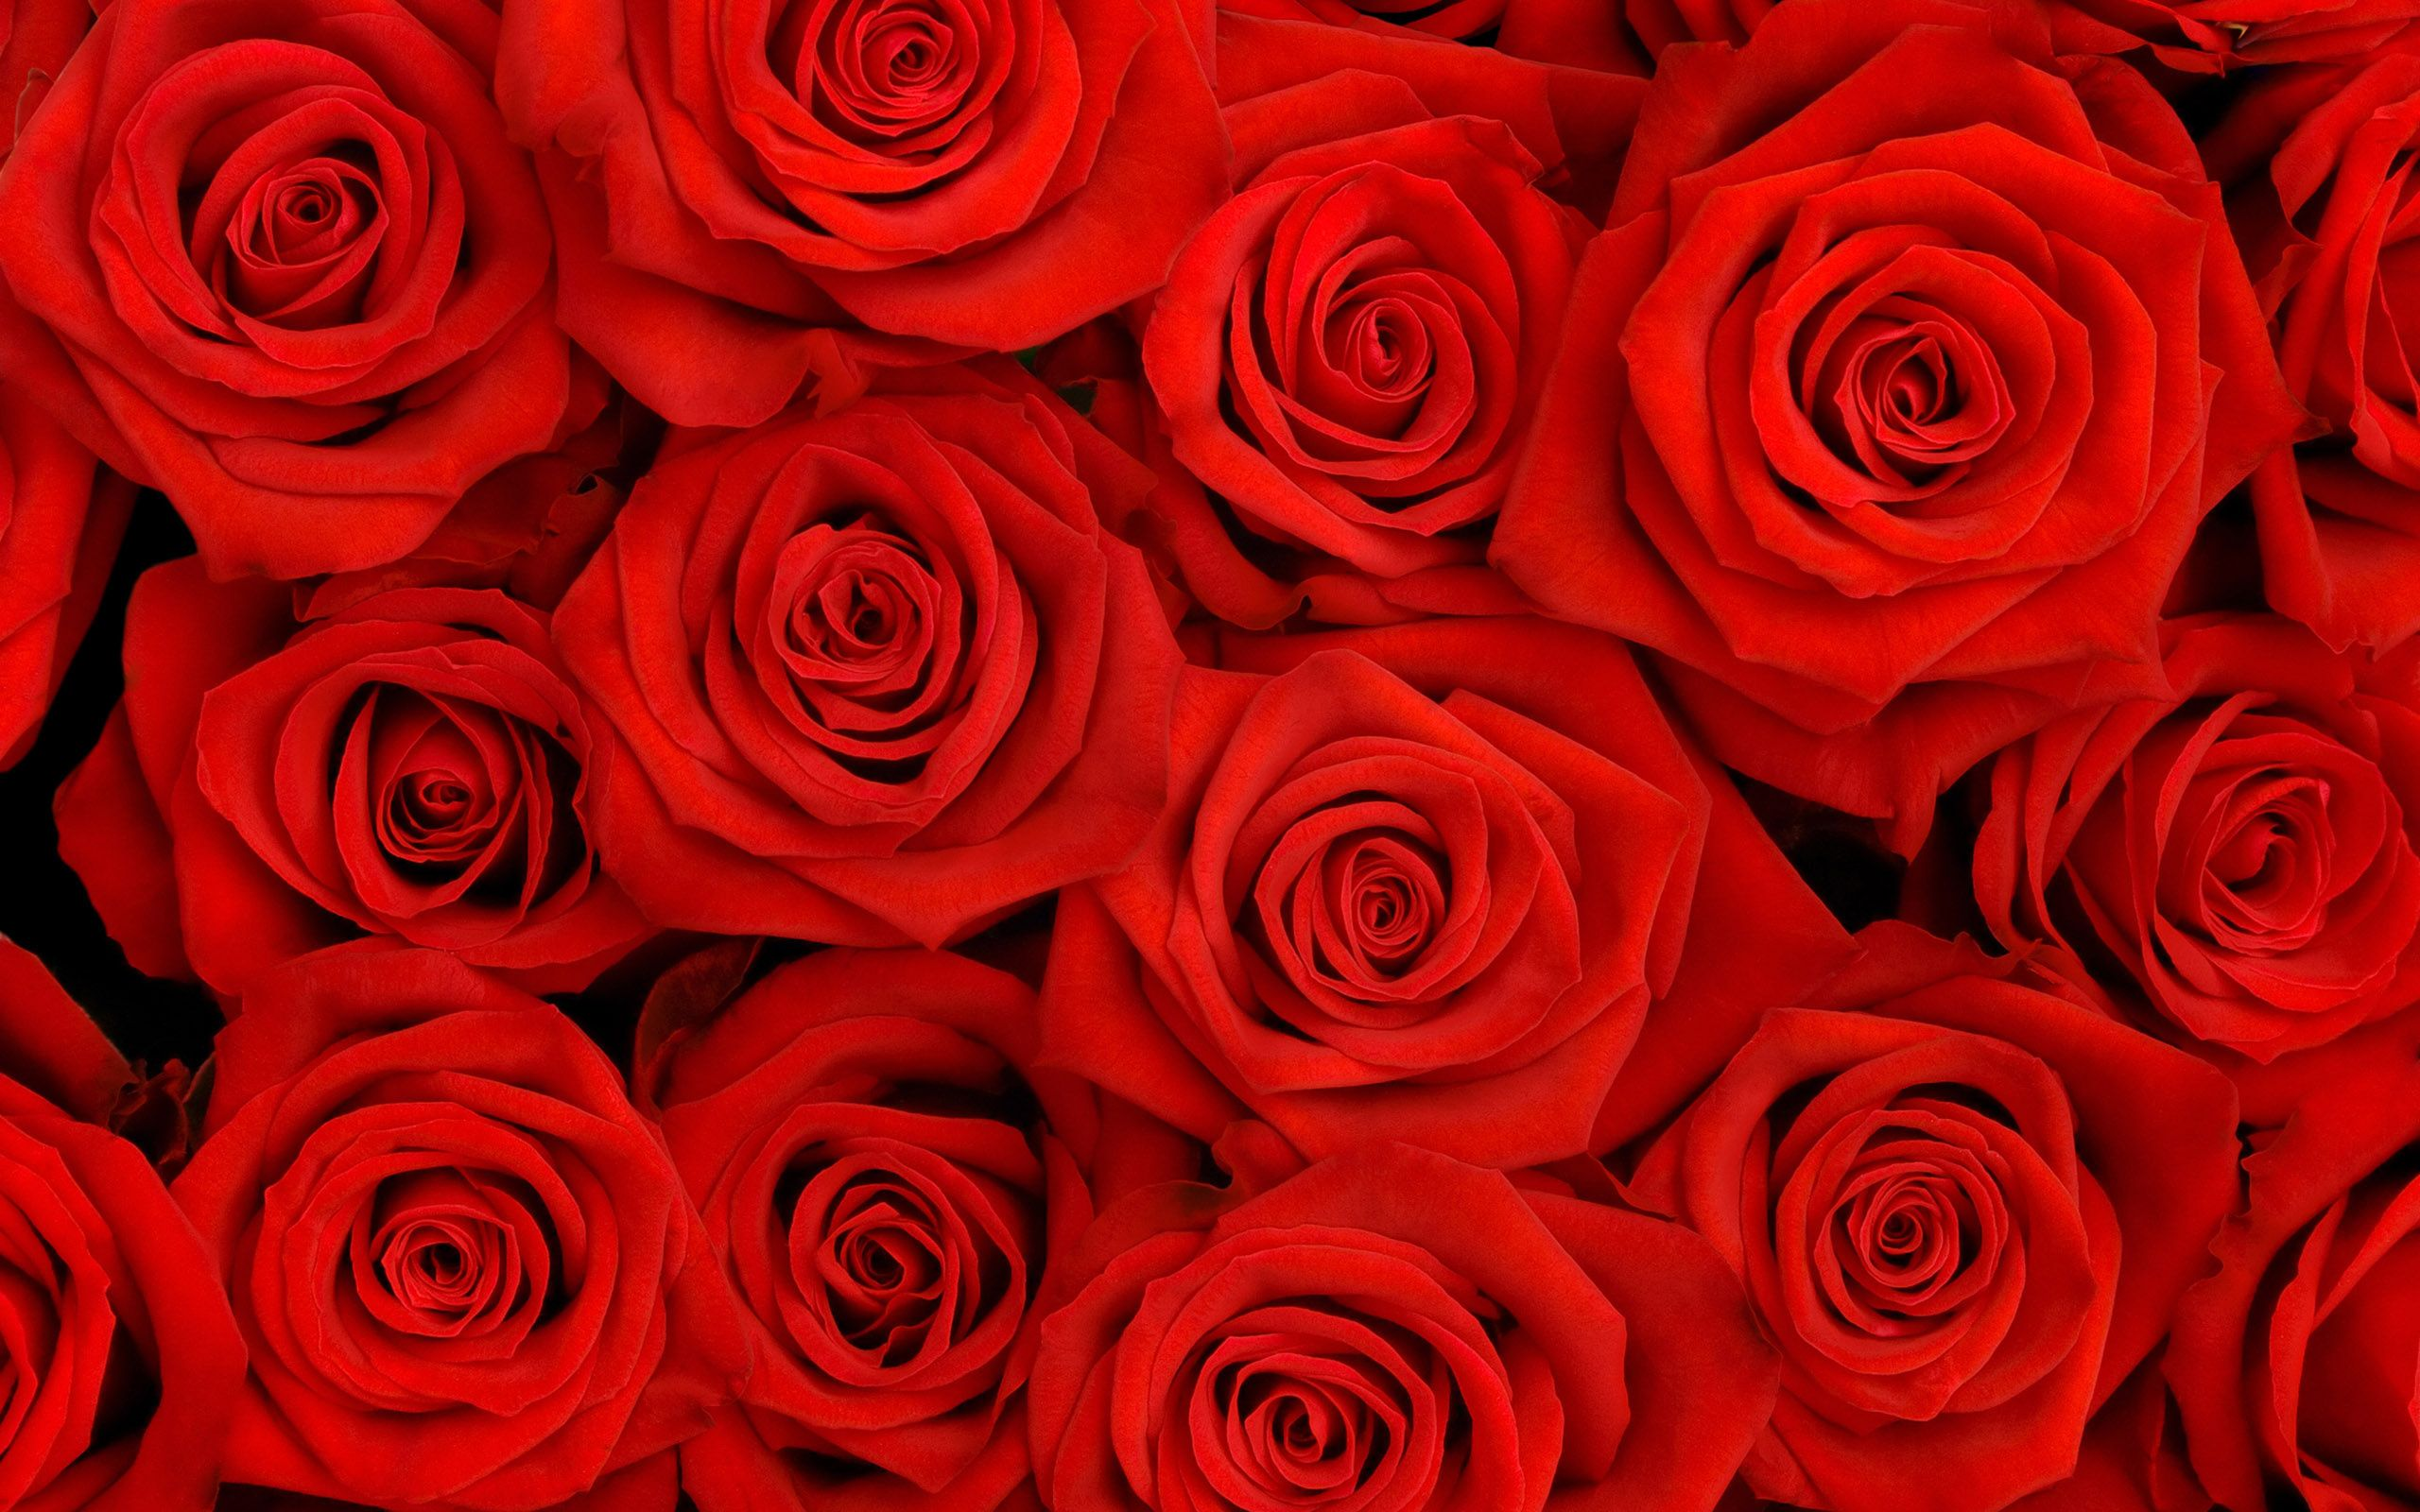 Rose wallpaper for desktop background hd pictures 4 hd - Red rose flower hd images ...